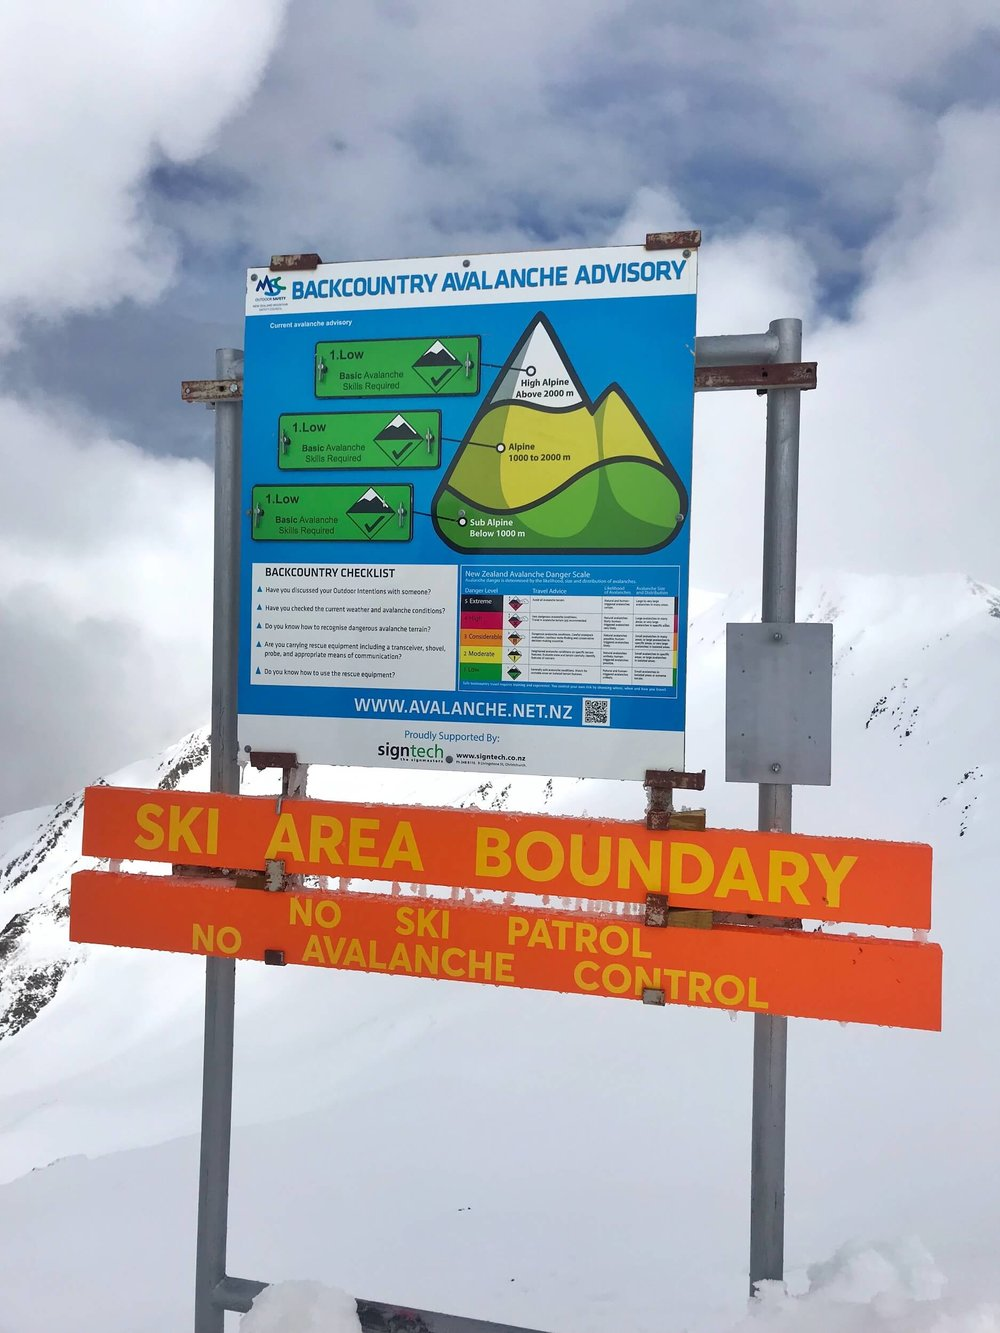 THE VERY HANDY AVALANCHE ADVISORY SIGN AT THE TOP OF THE RIDGE T-BAR.